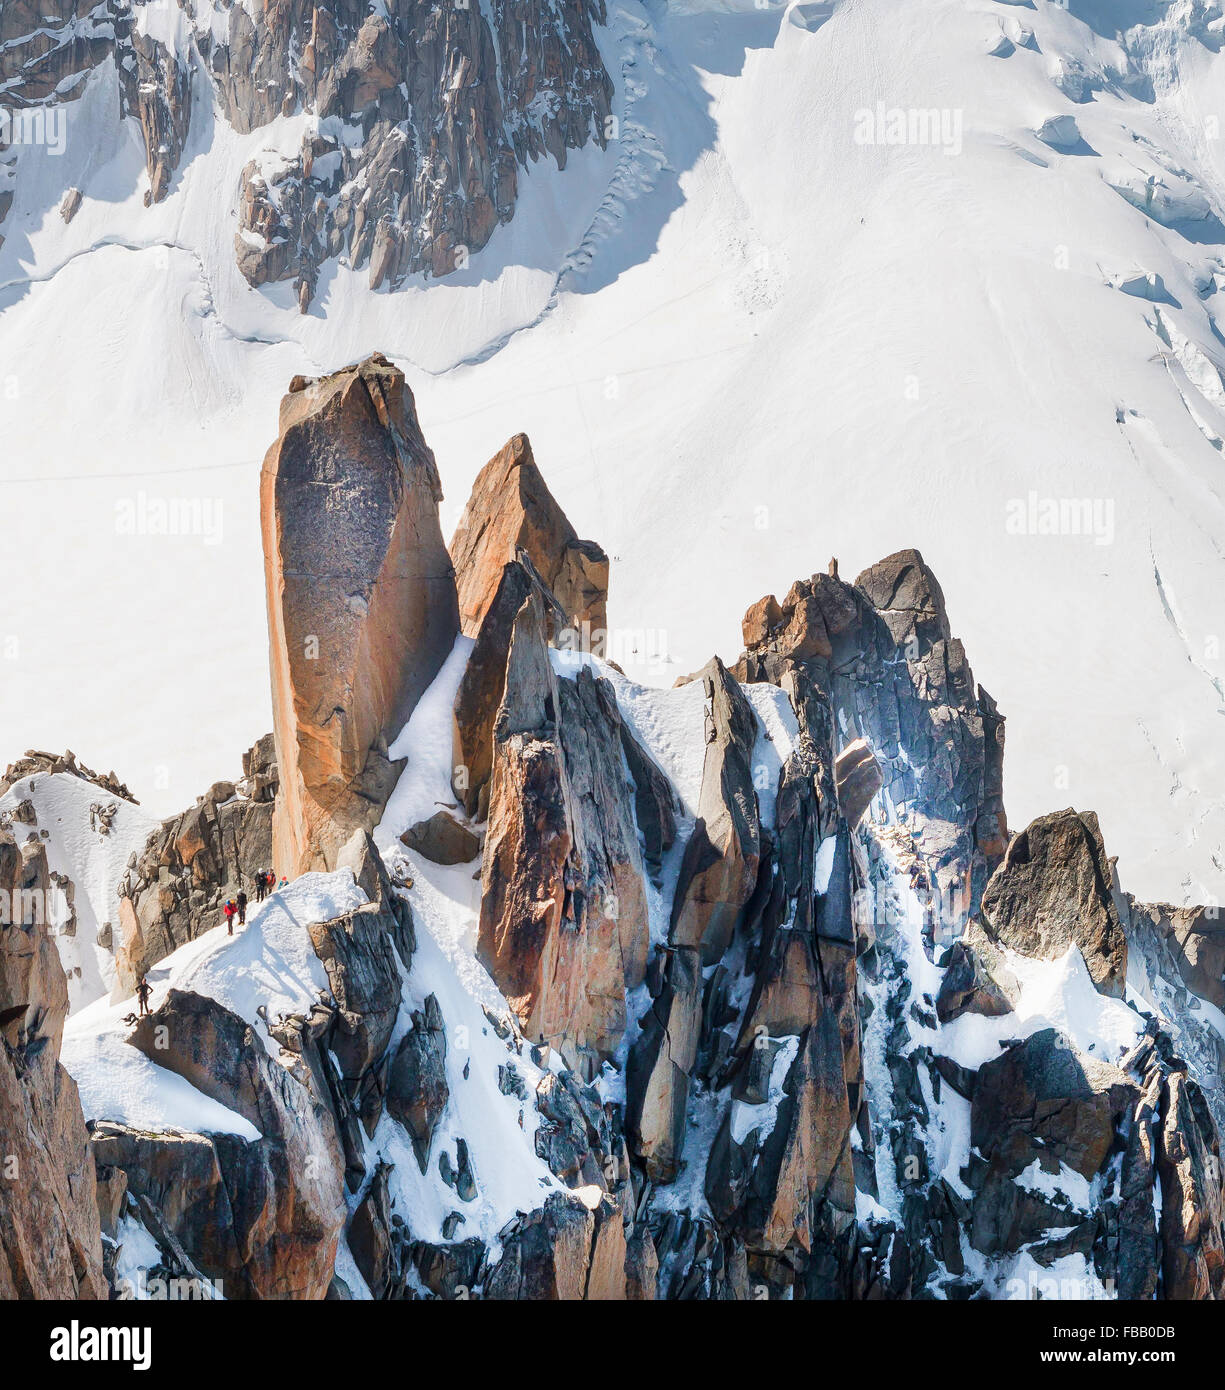 Trekking  and recreation in  the  Alps mountains , in summer. Tourism background. Stock Photo